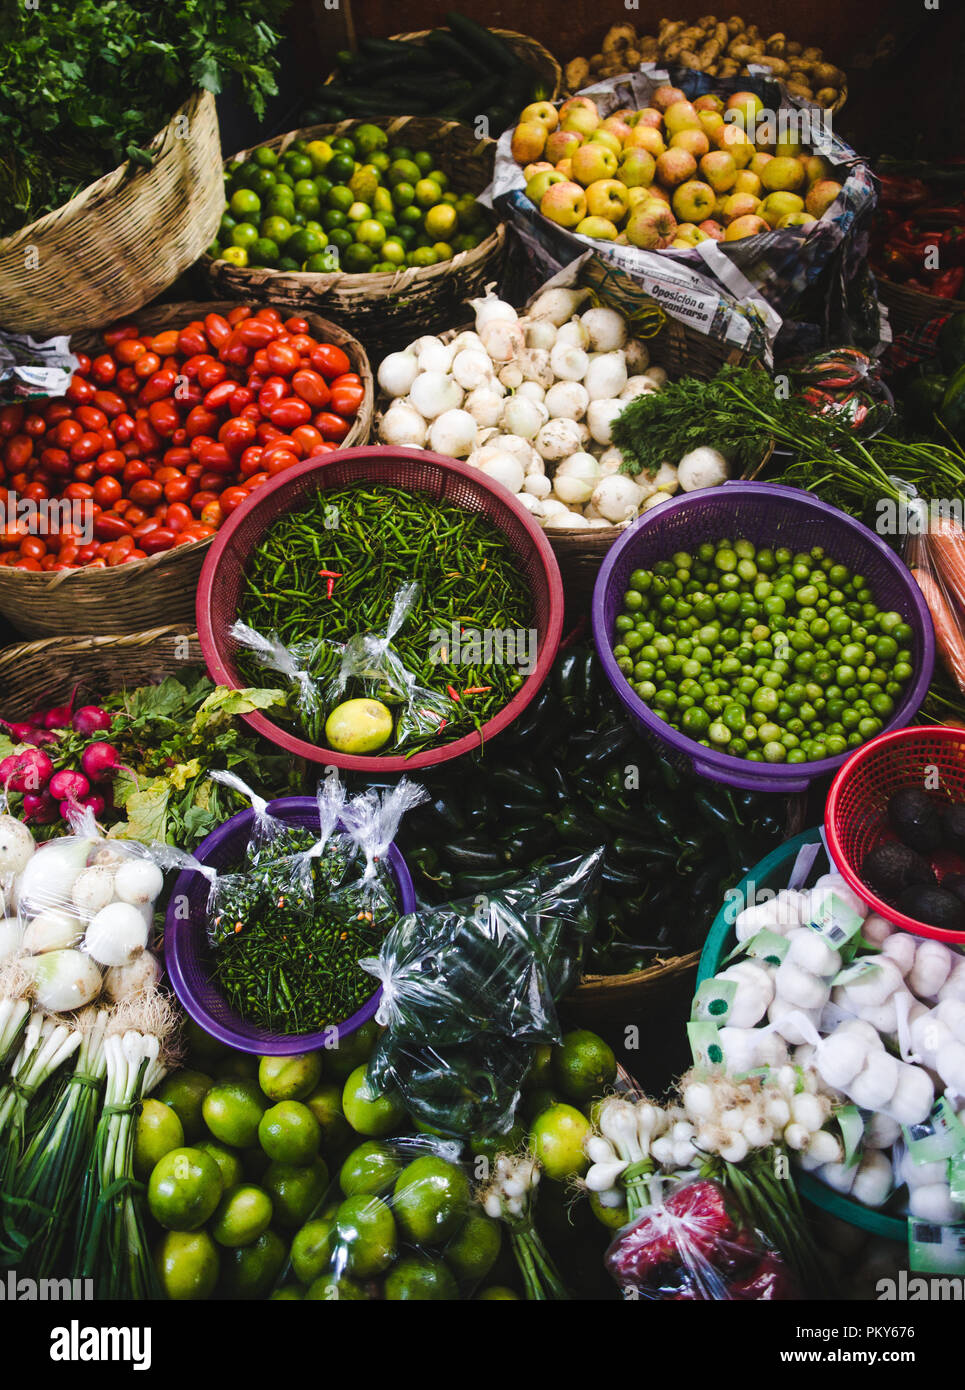 Autumn harvest of fresh organic vegetables on sale at a market stall - colorful bowls of tomato, beans, chillies, garlic, mushrooms, limes and apples Stock Photo